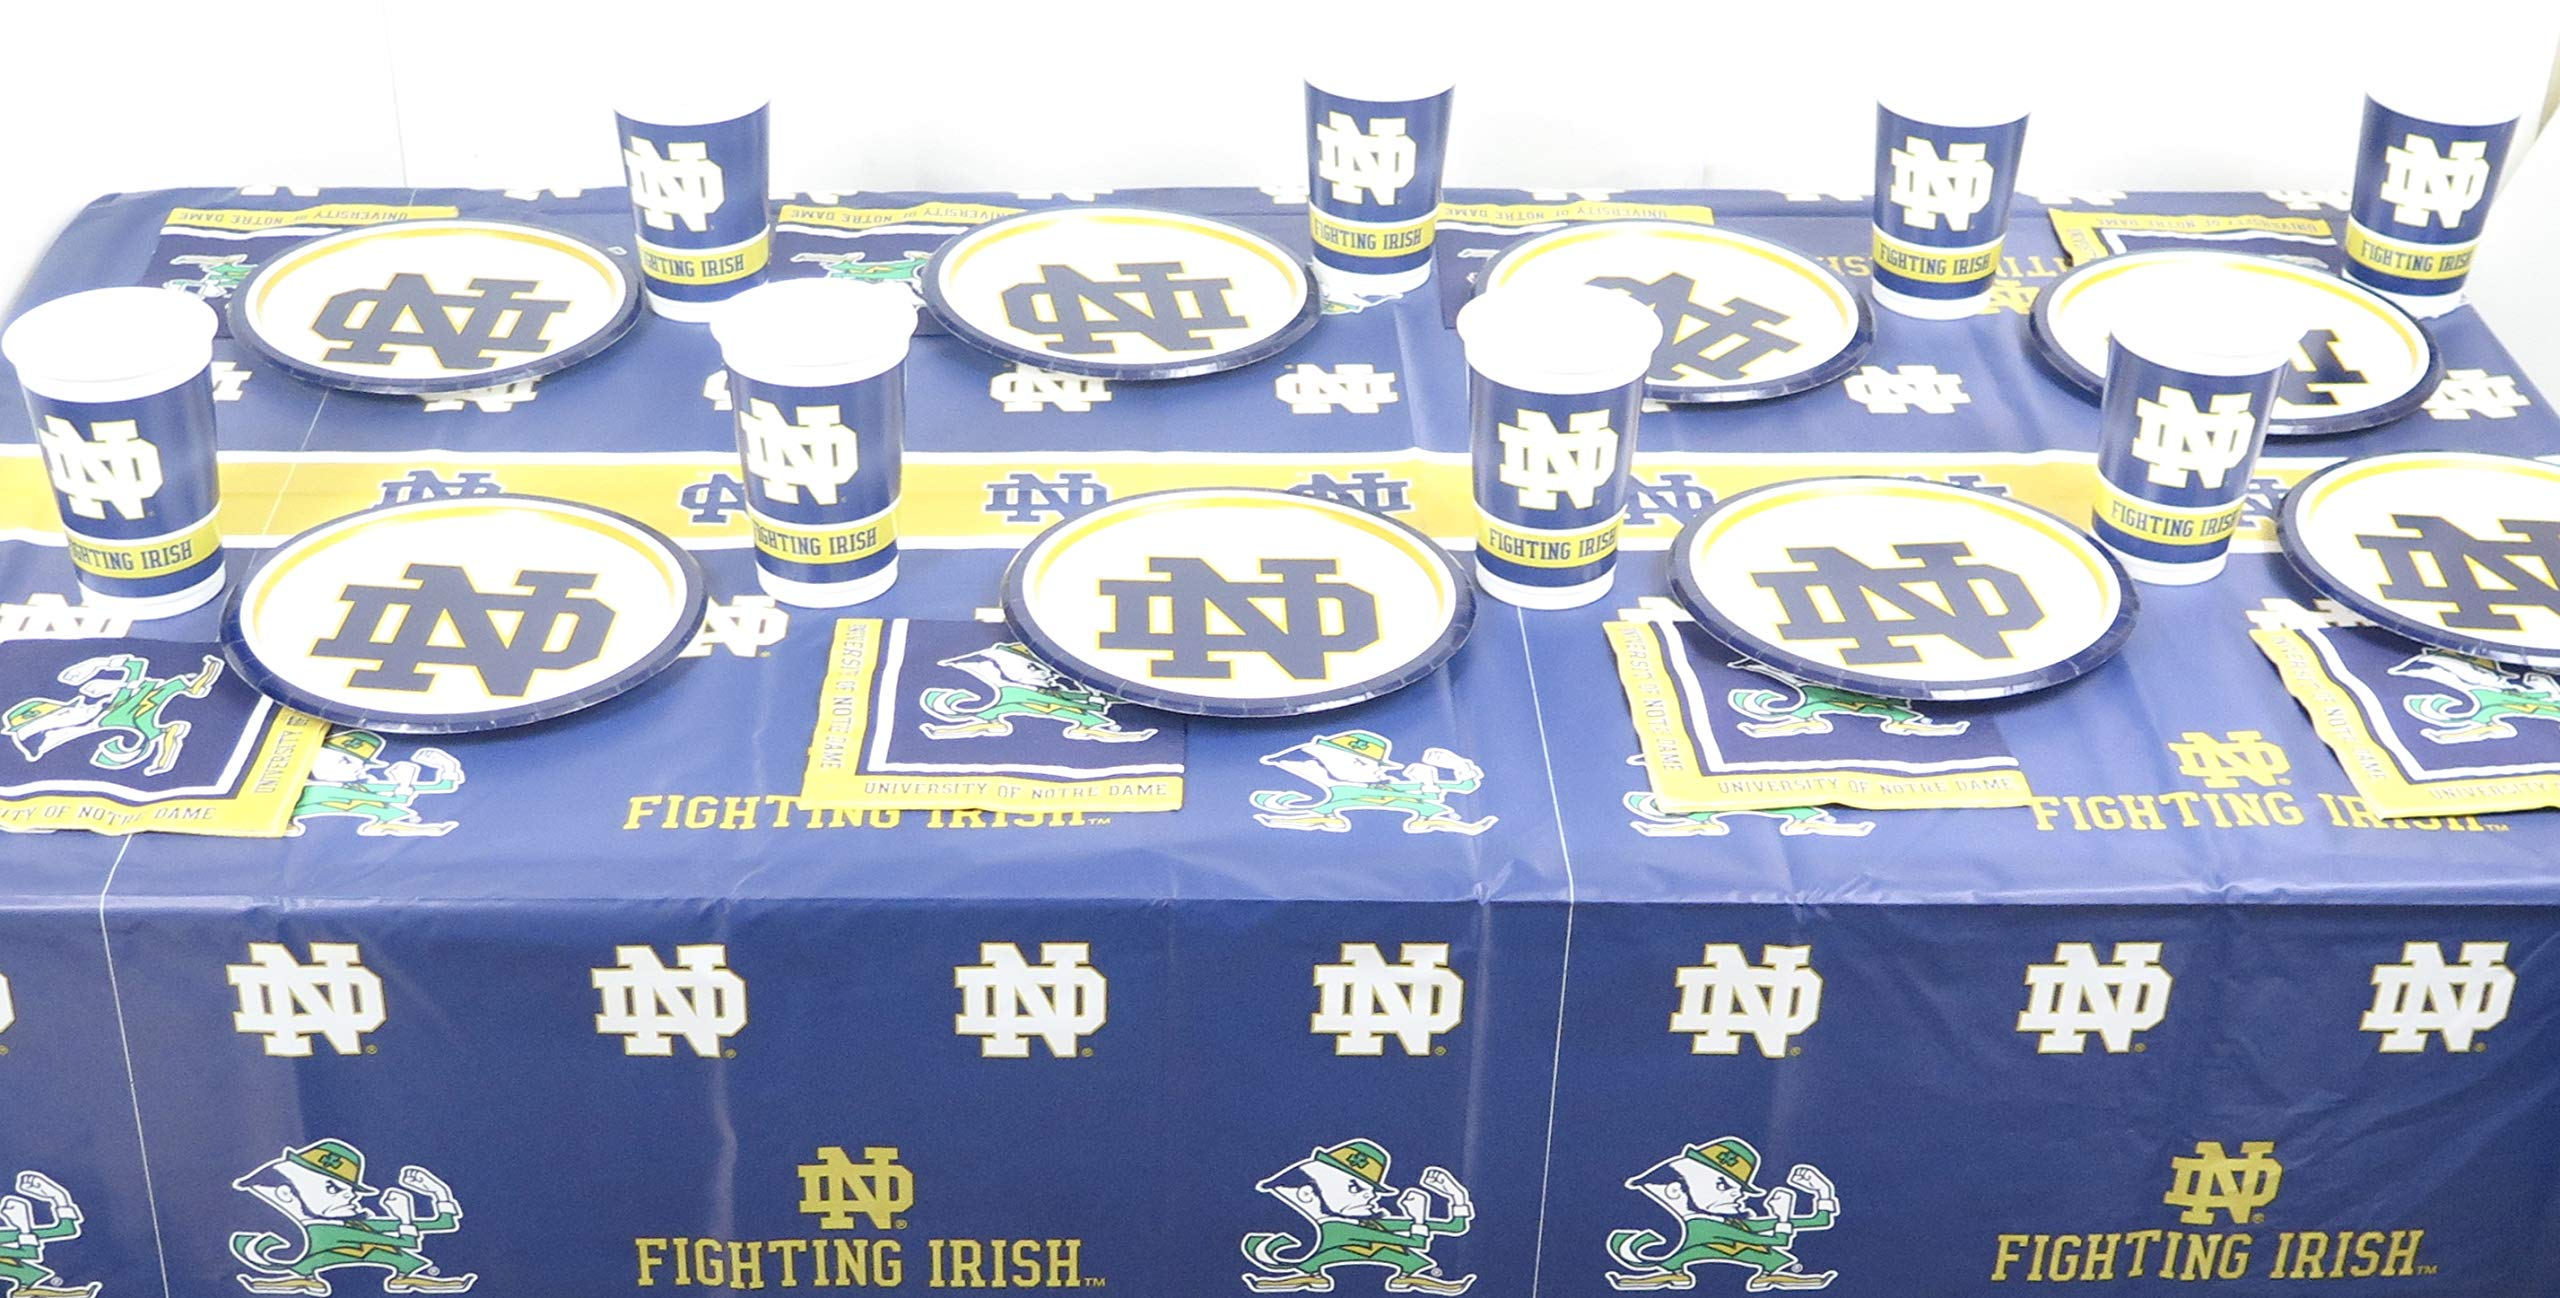 Notre Dame Football Graduation Party, 49 Pieces Set, Includes Plates, Napkins, Jumbo Plastic Cups and a Tablecloth